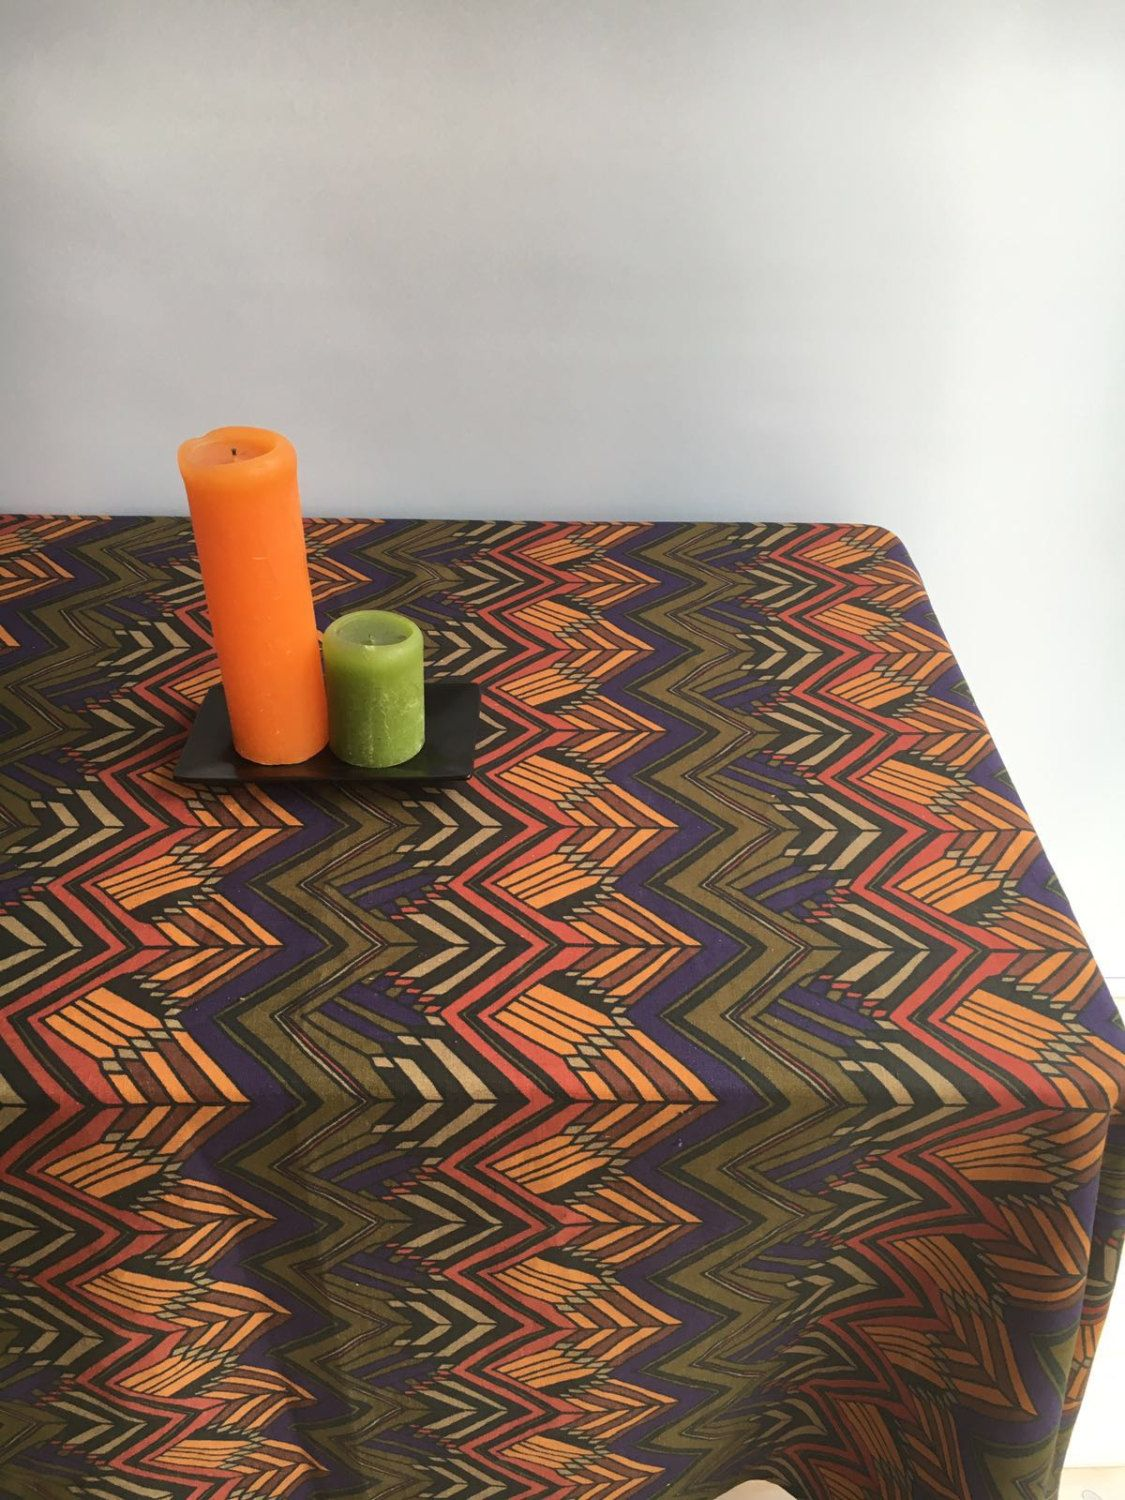 Exceptional Vintage Inspired Tablecloth, Retro Linen Table Cloth, Autumn Tablecloth  1960s Geometric Scandinavian Tablecloth Rectangle